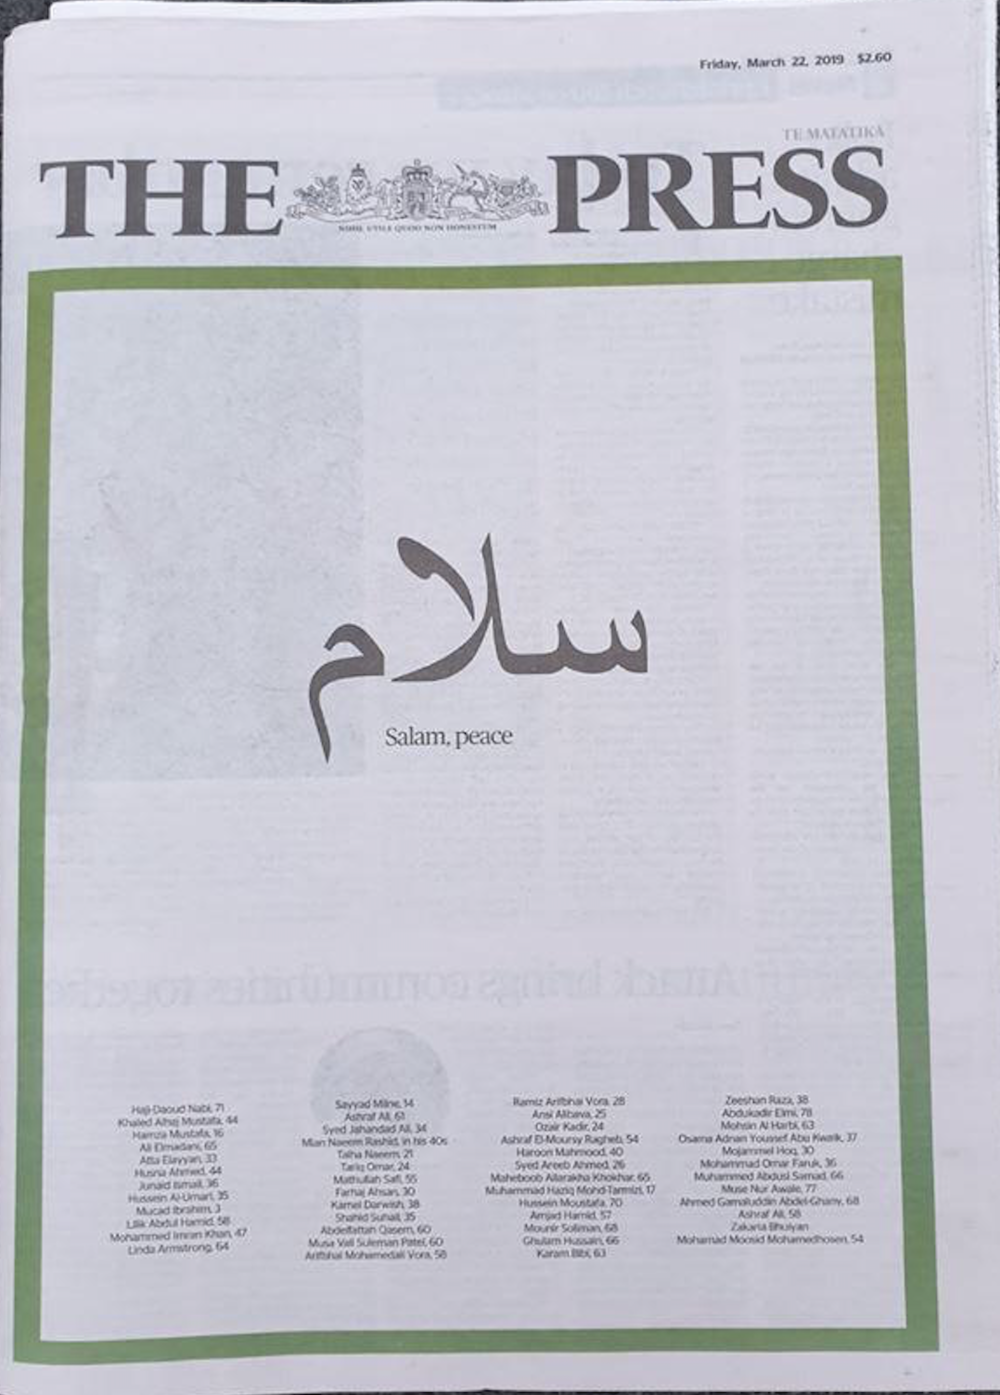 The Press, a daily newspaper published in Christchurch, New Zealand, lists the names of the 50 people killed in the mosque attacks in the March 22nd issue.